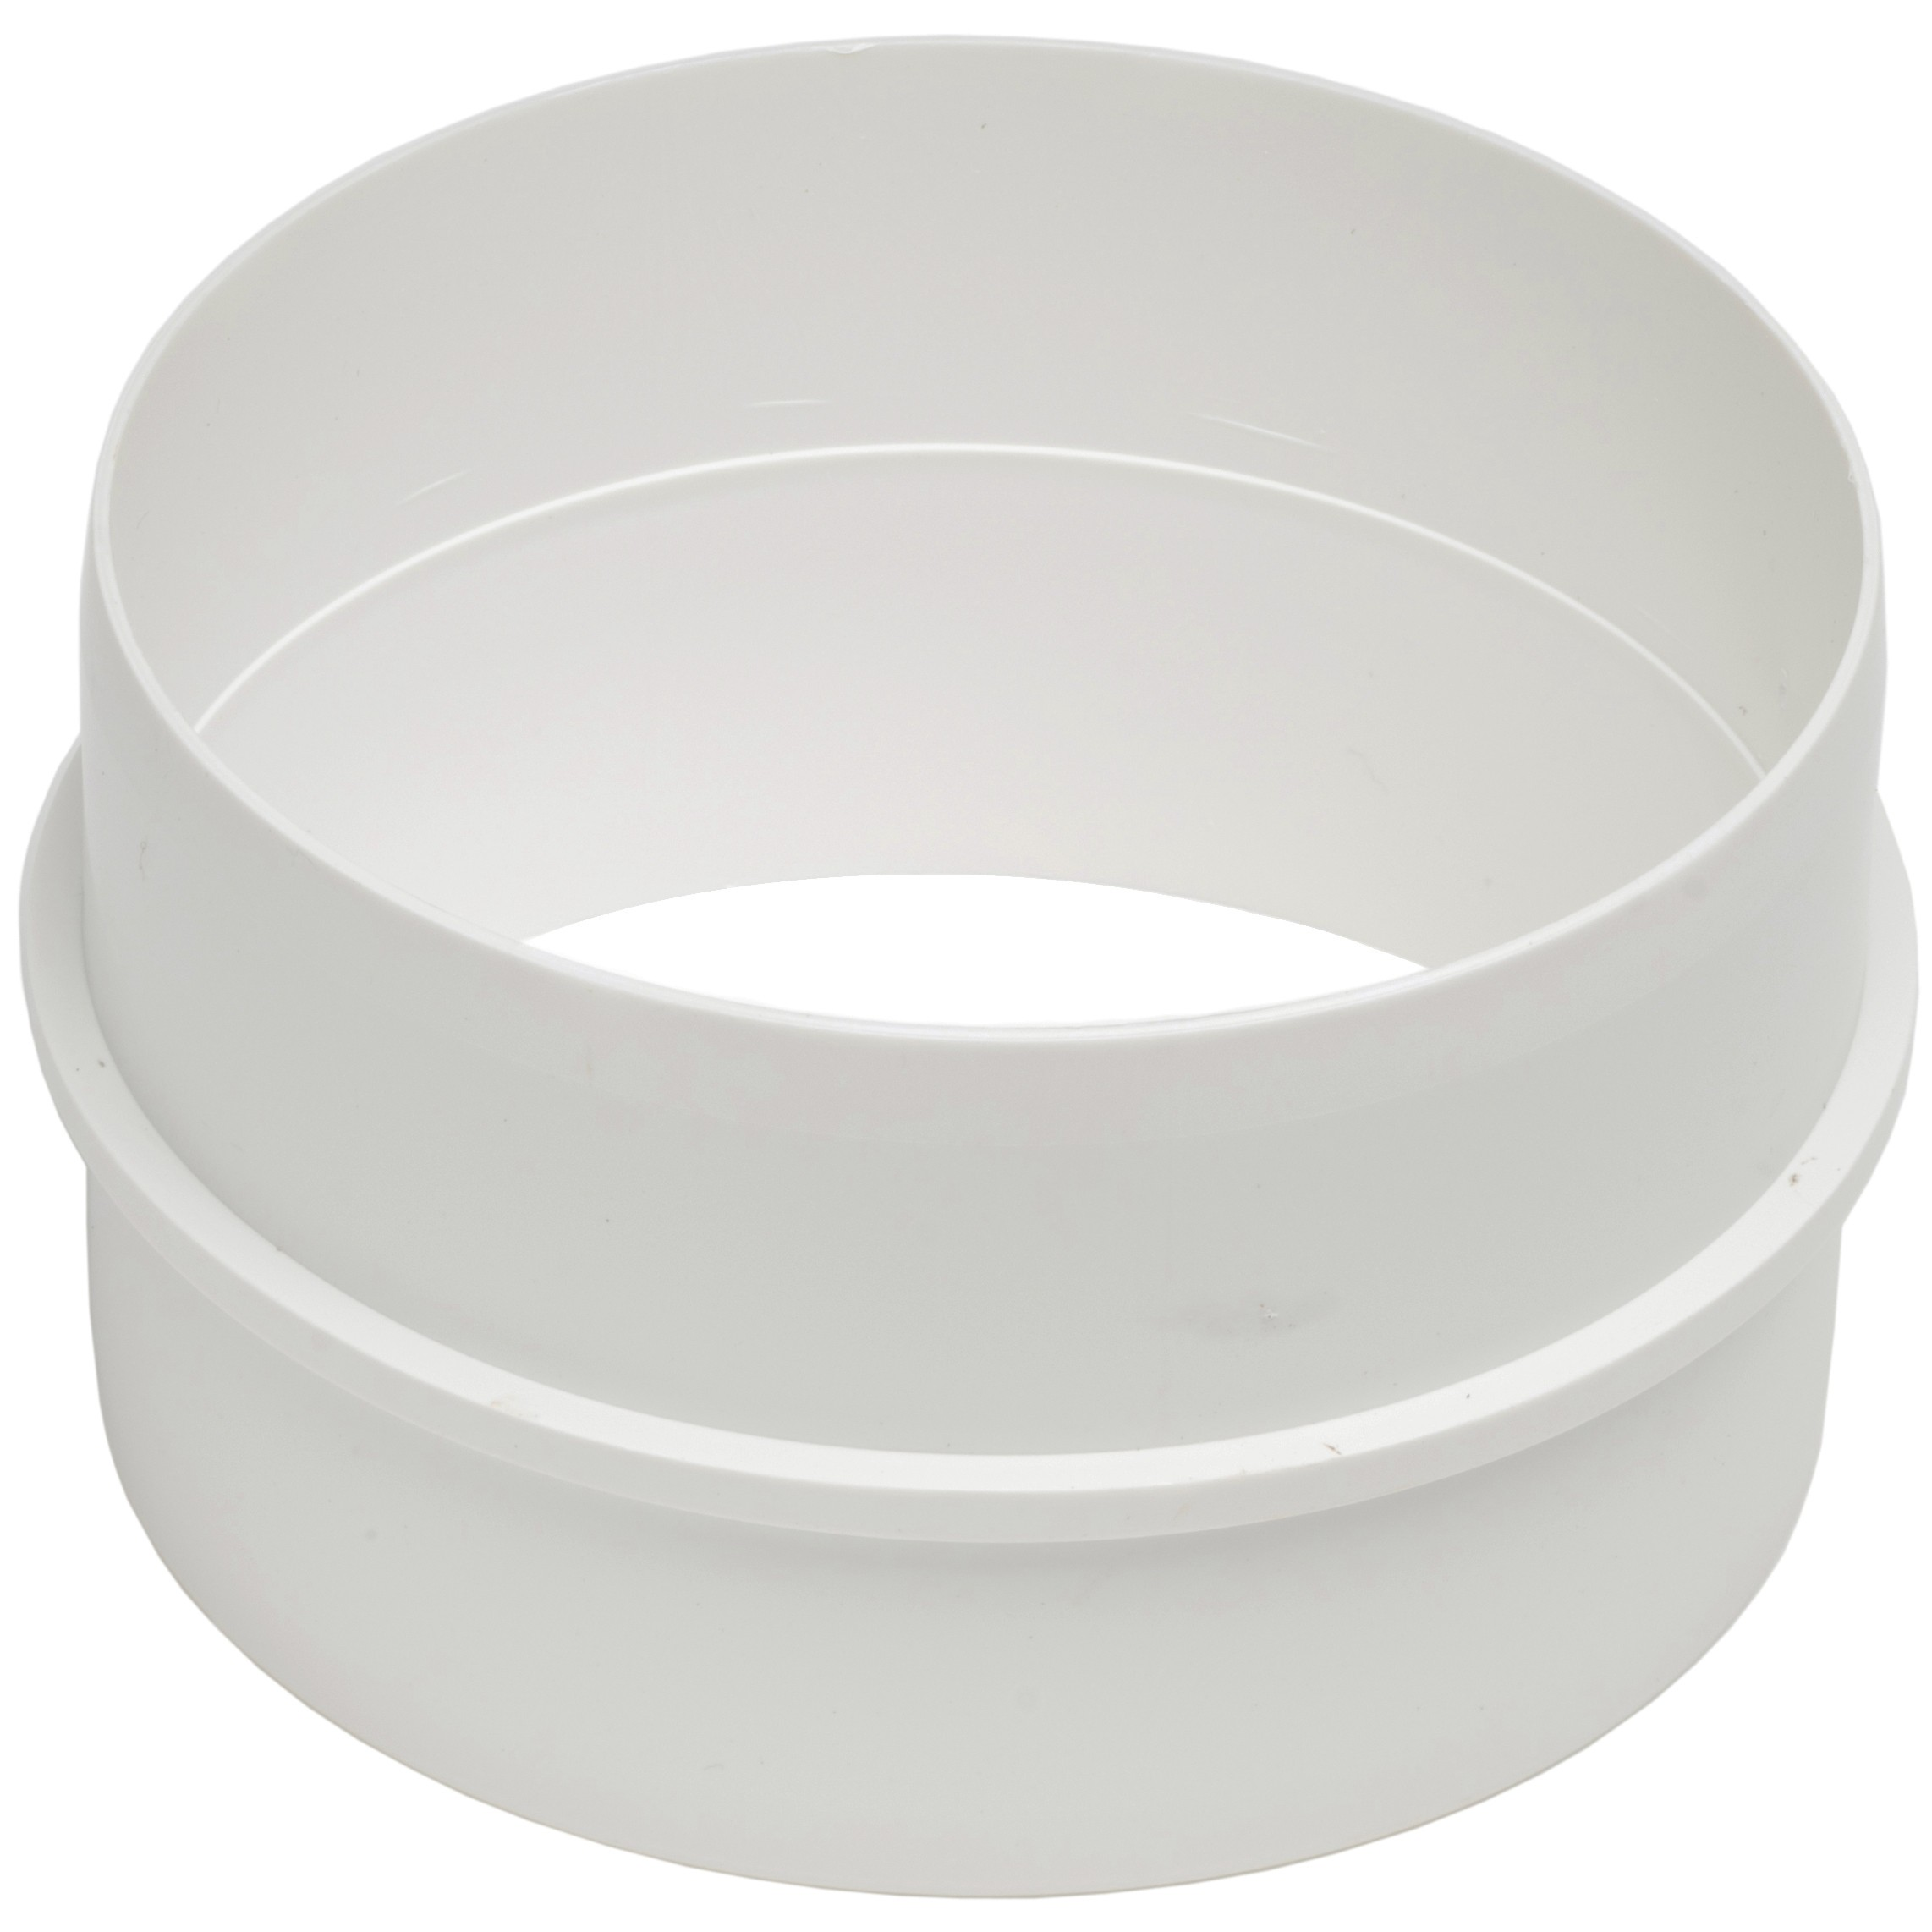 Manrose Round Ducting Pipe Connector - White, 100mm